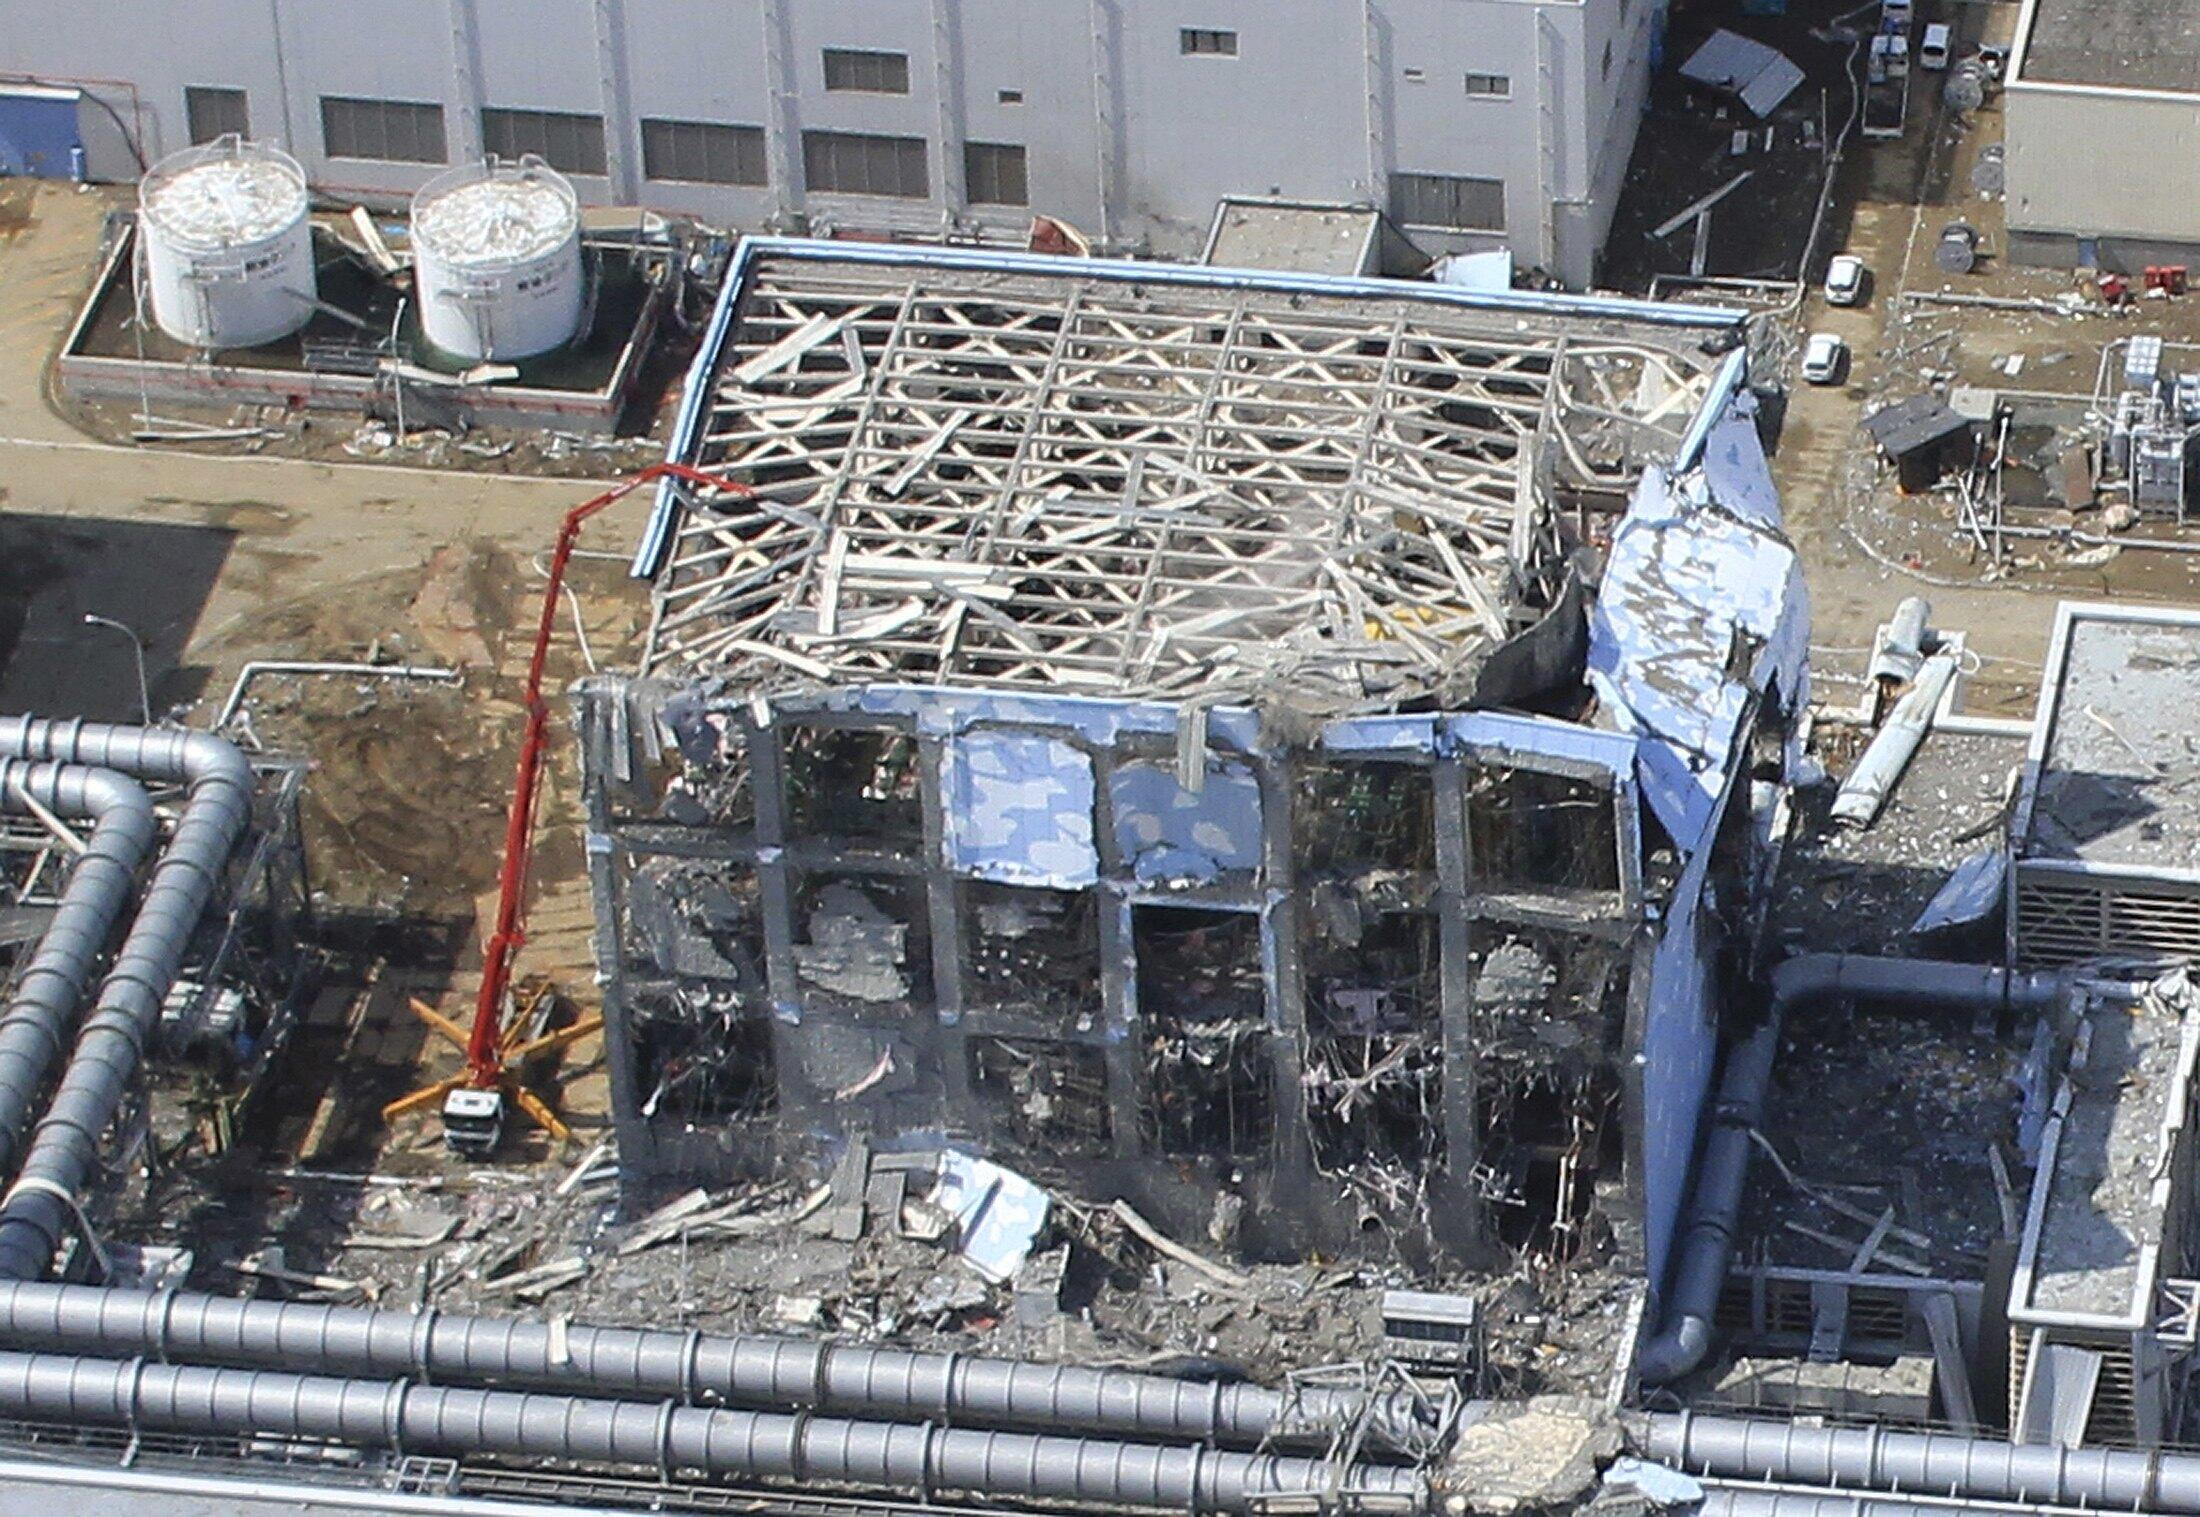 An aerial view of the Fukushima Daiichi Nuclear Power Station